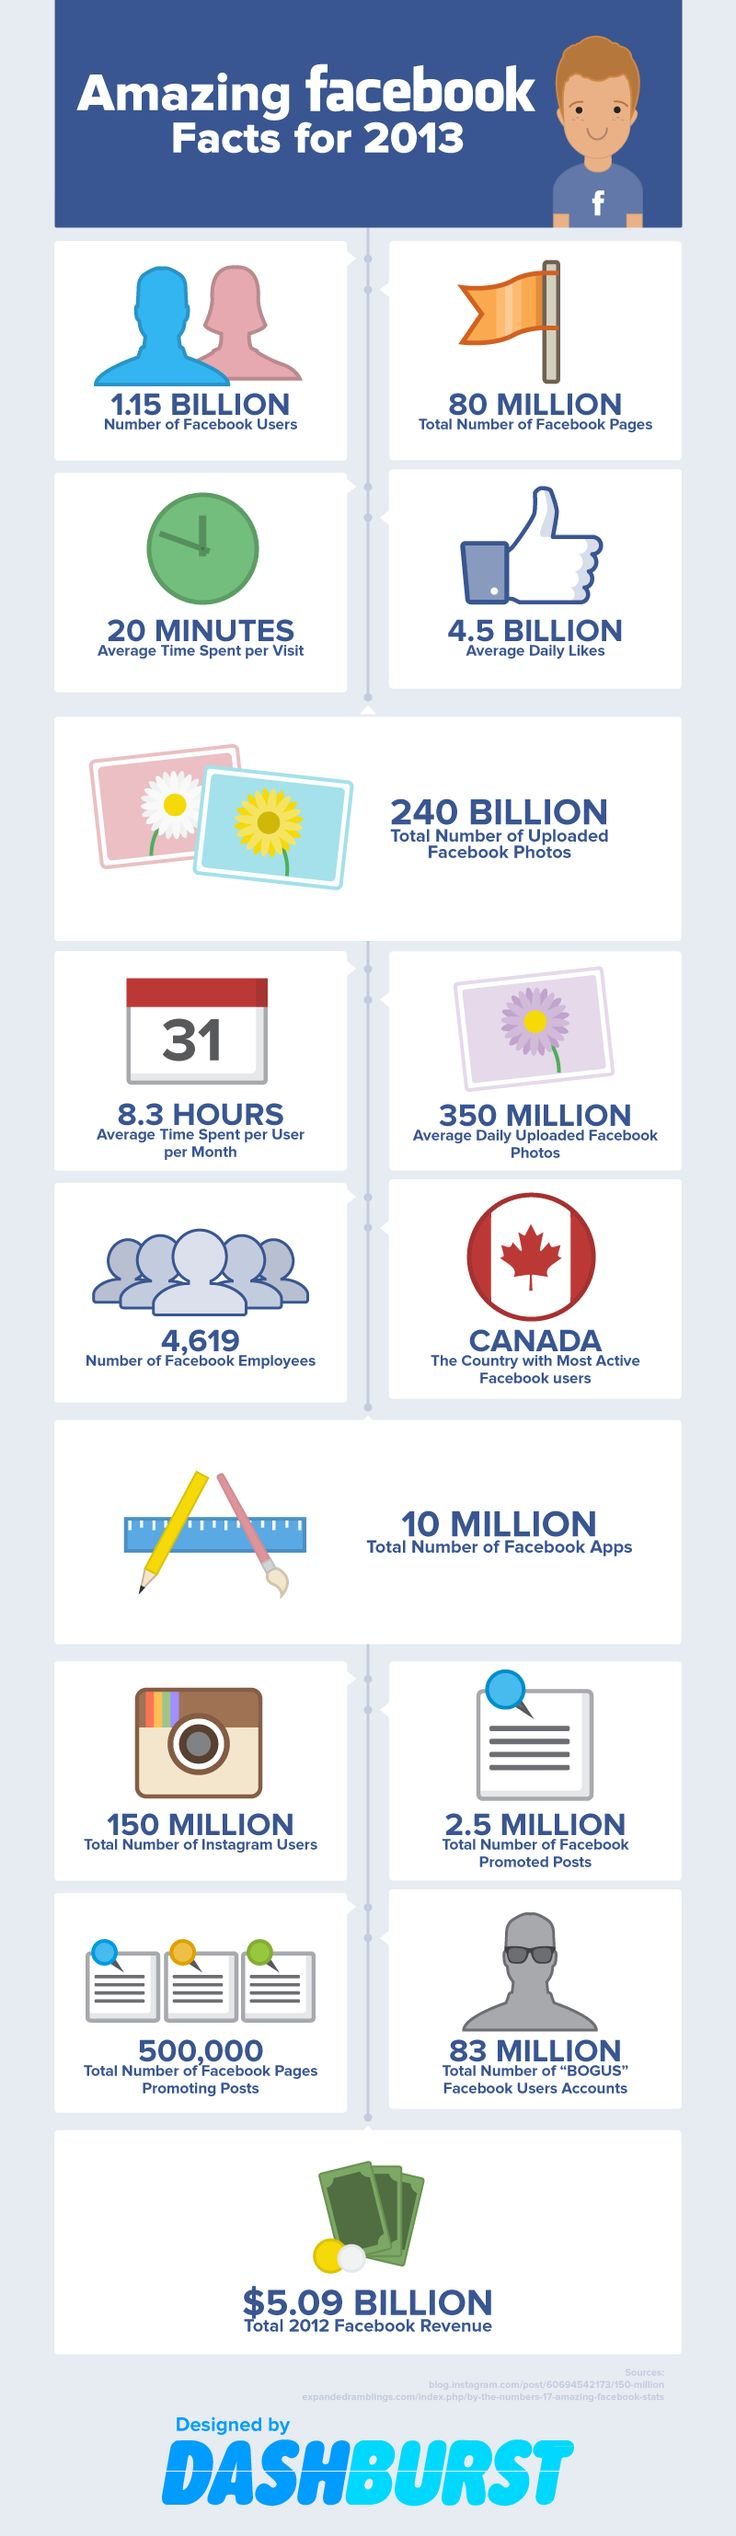 Best Just The Facts Images On Pinterest Interesting Facts - 15 amazing facts about the internet